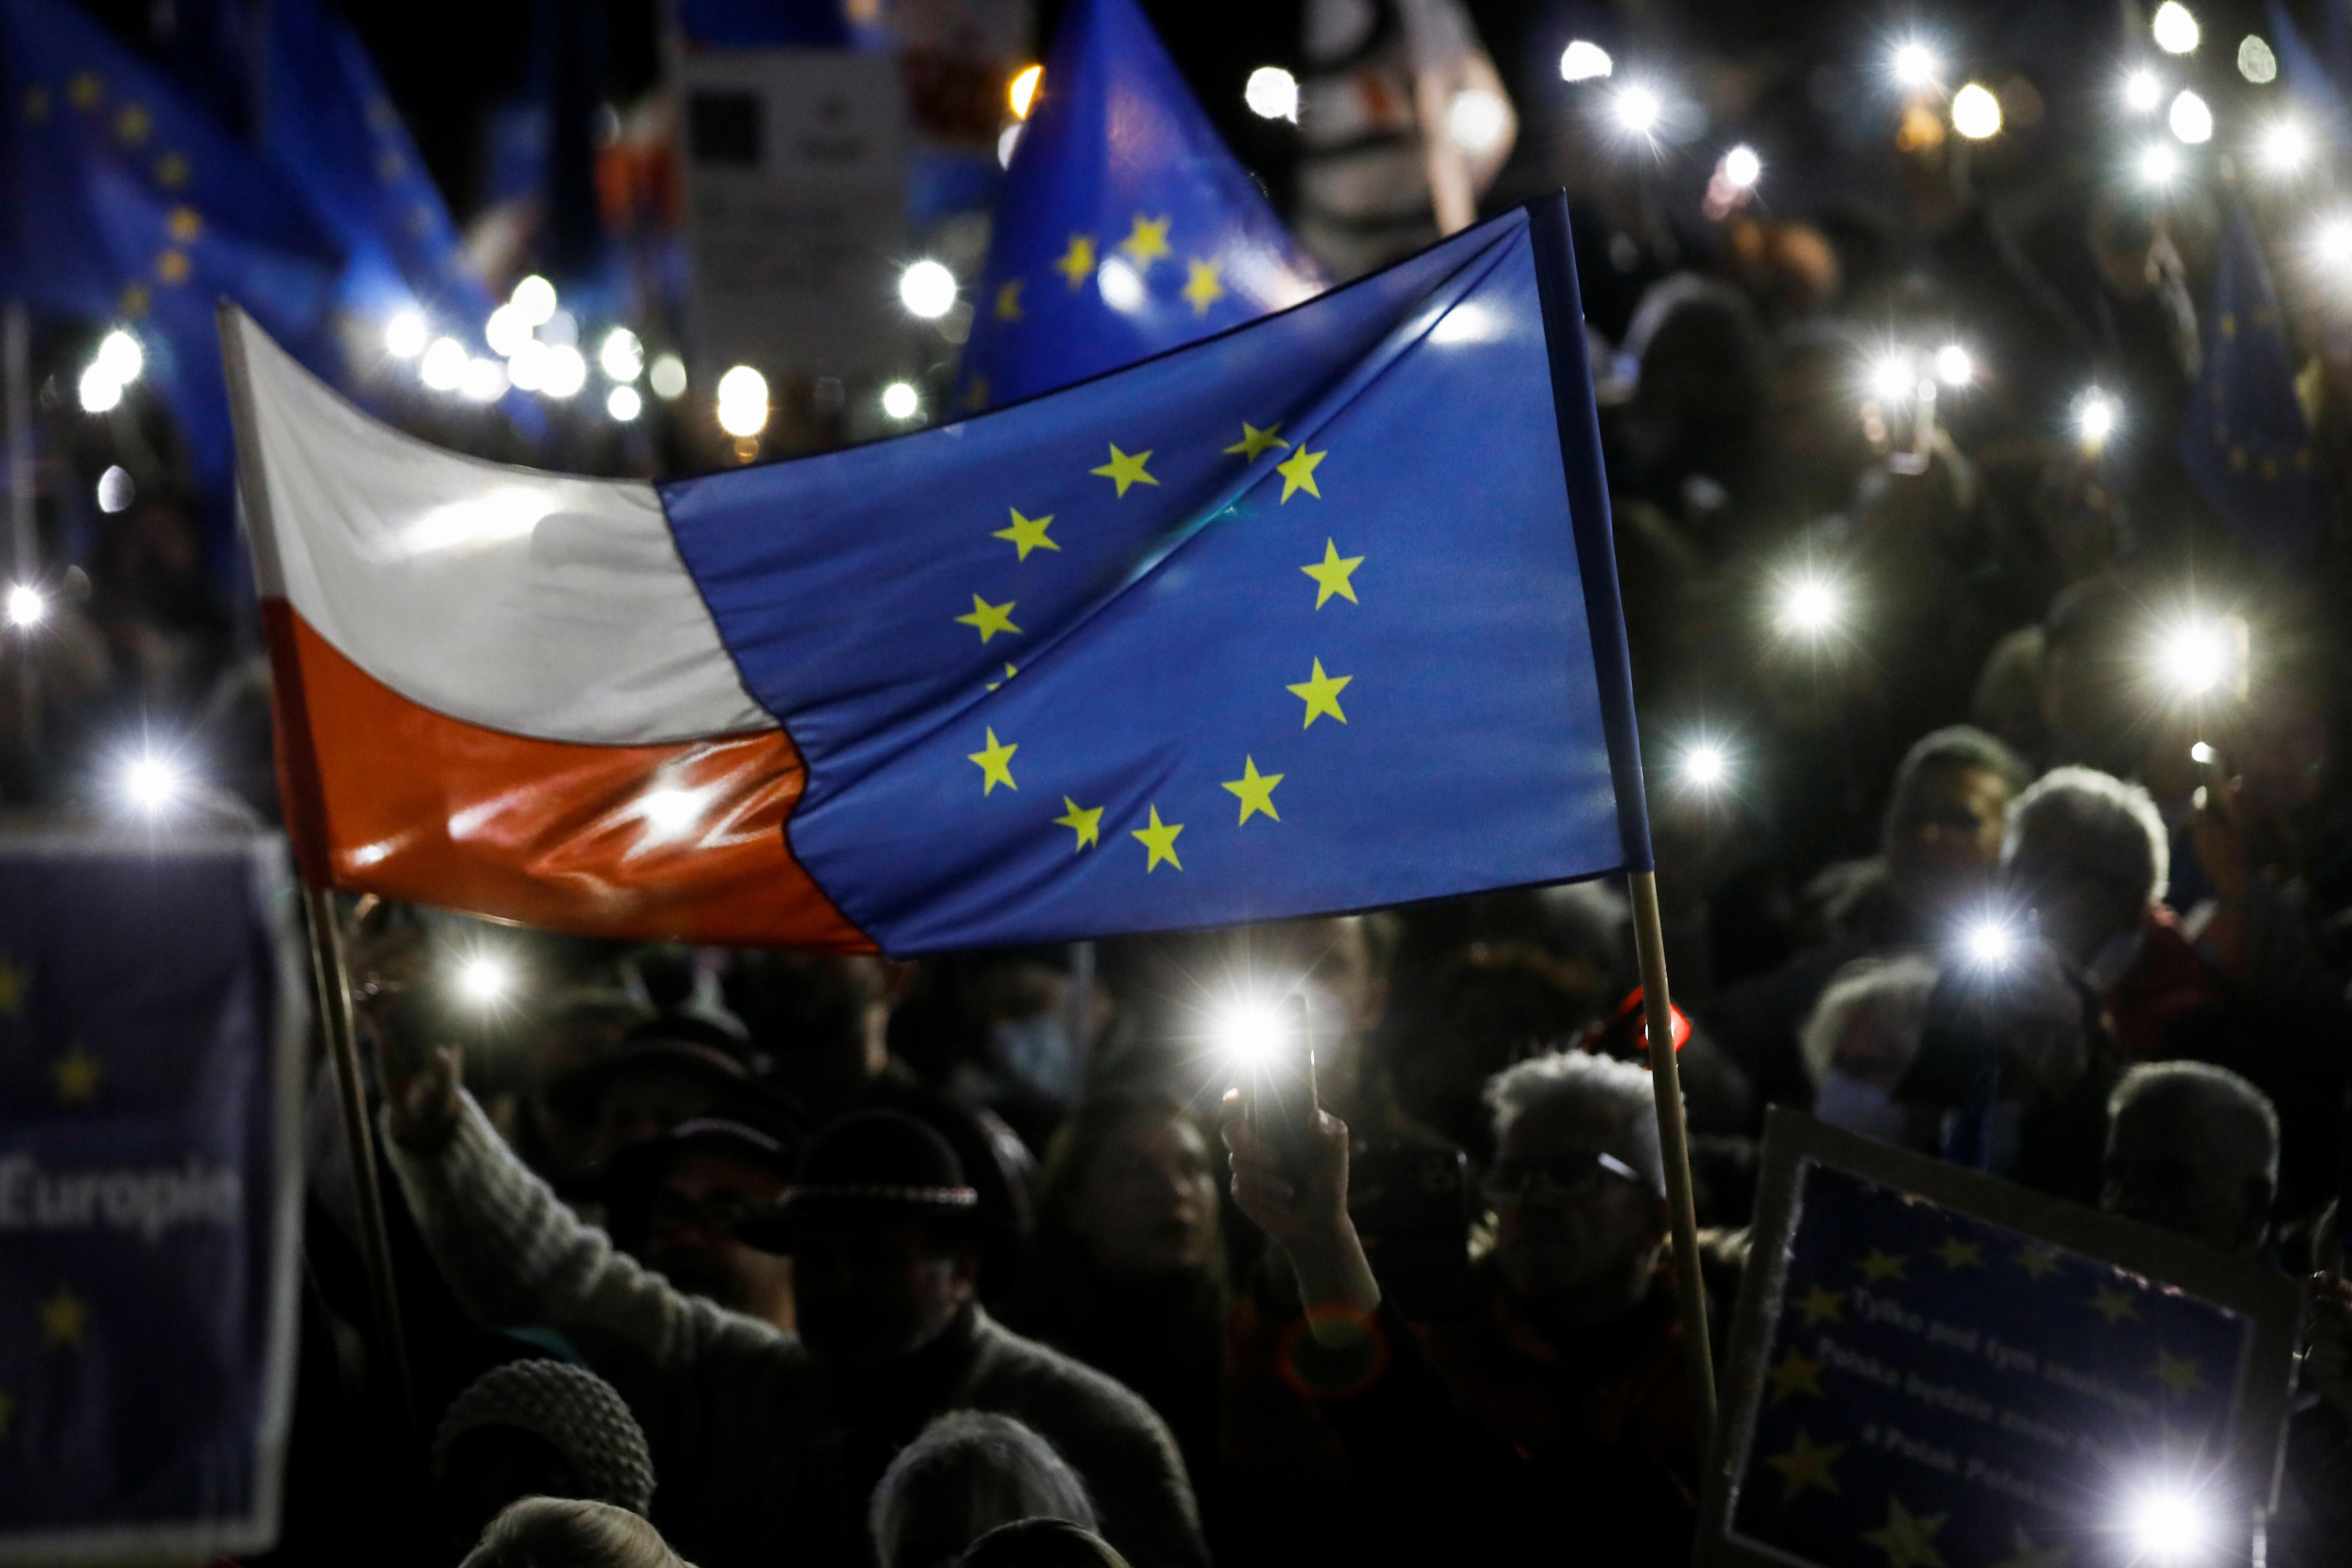 People hold flags and light up their mobile phones during a rally in support of Poland's membership in the European Union after the country's Constitutional Tribunal ruled on the primacy of the constitution over EU law, undermining a key tenet of European integration, in Warsaw, Poland, October 10, 2021.